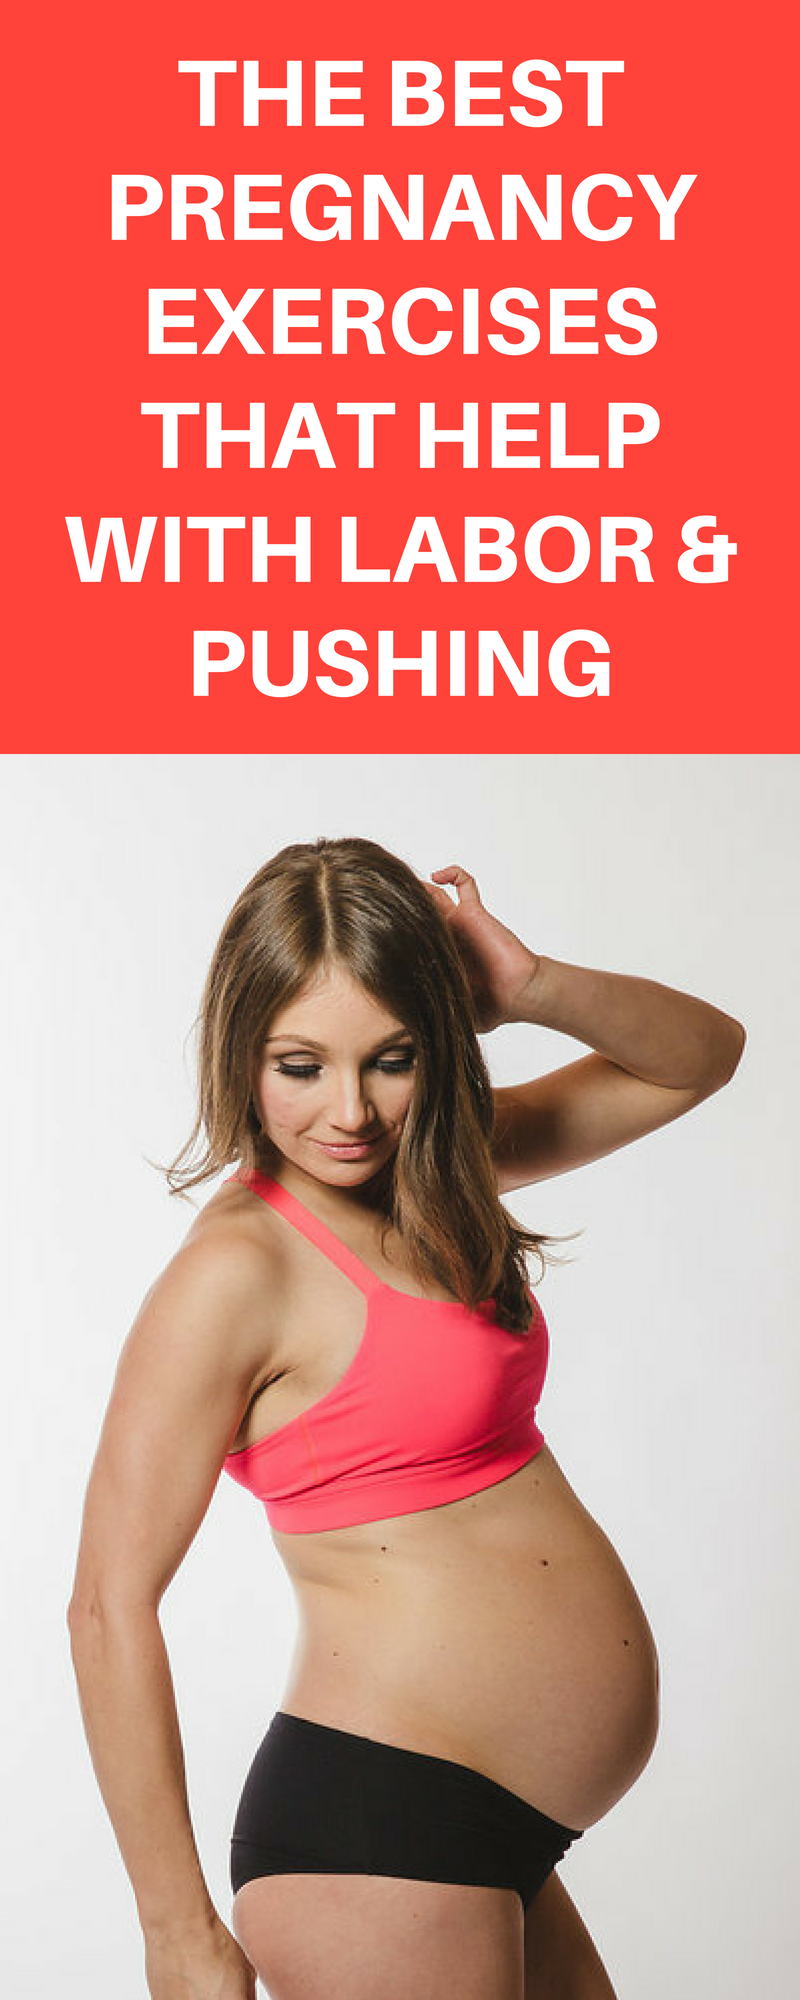 The best pregnancy exercises that help with labor and pushing